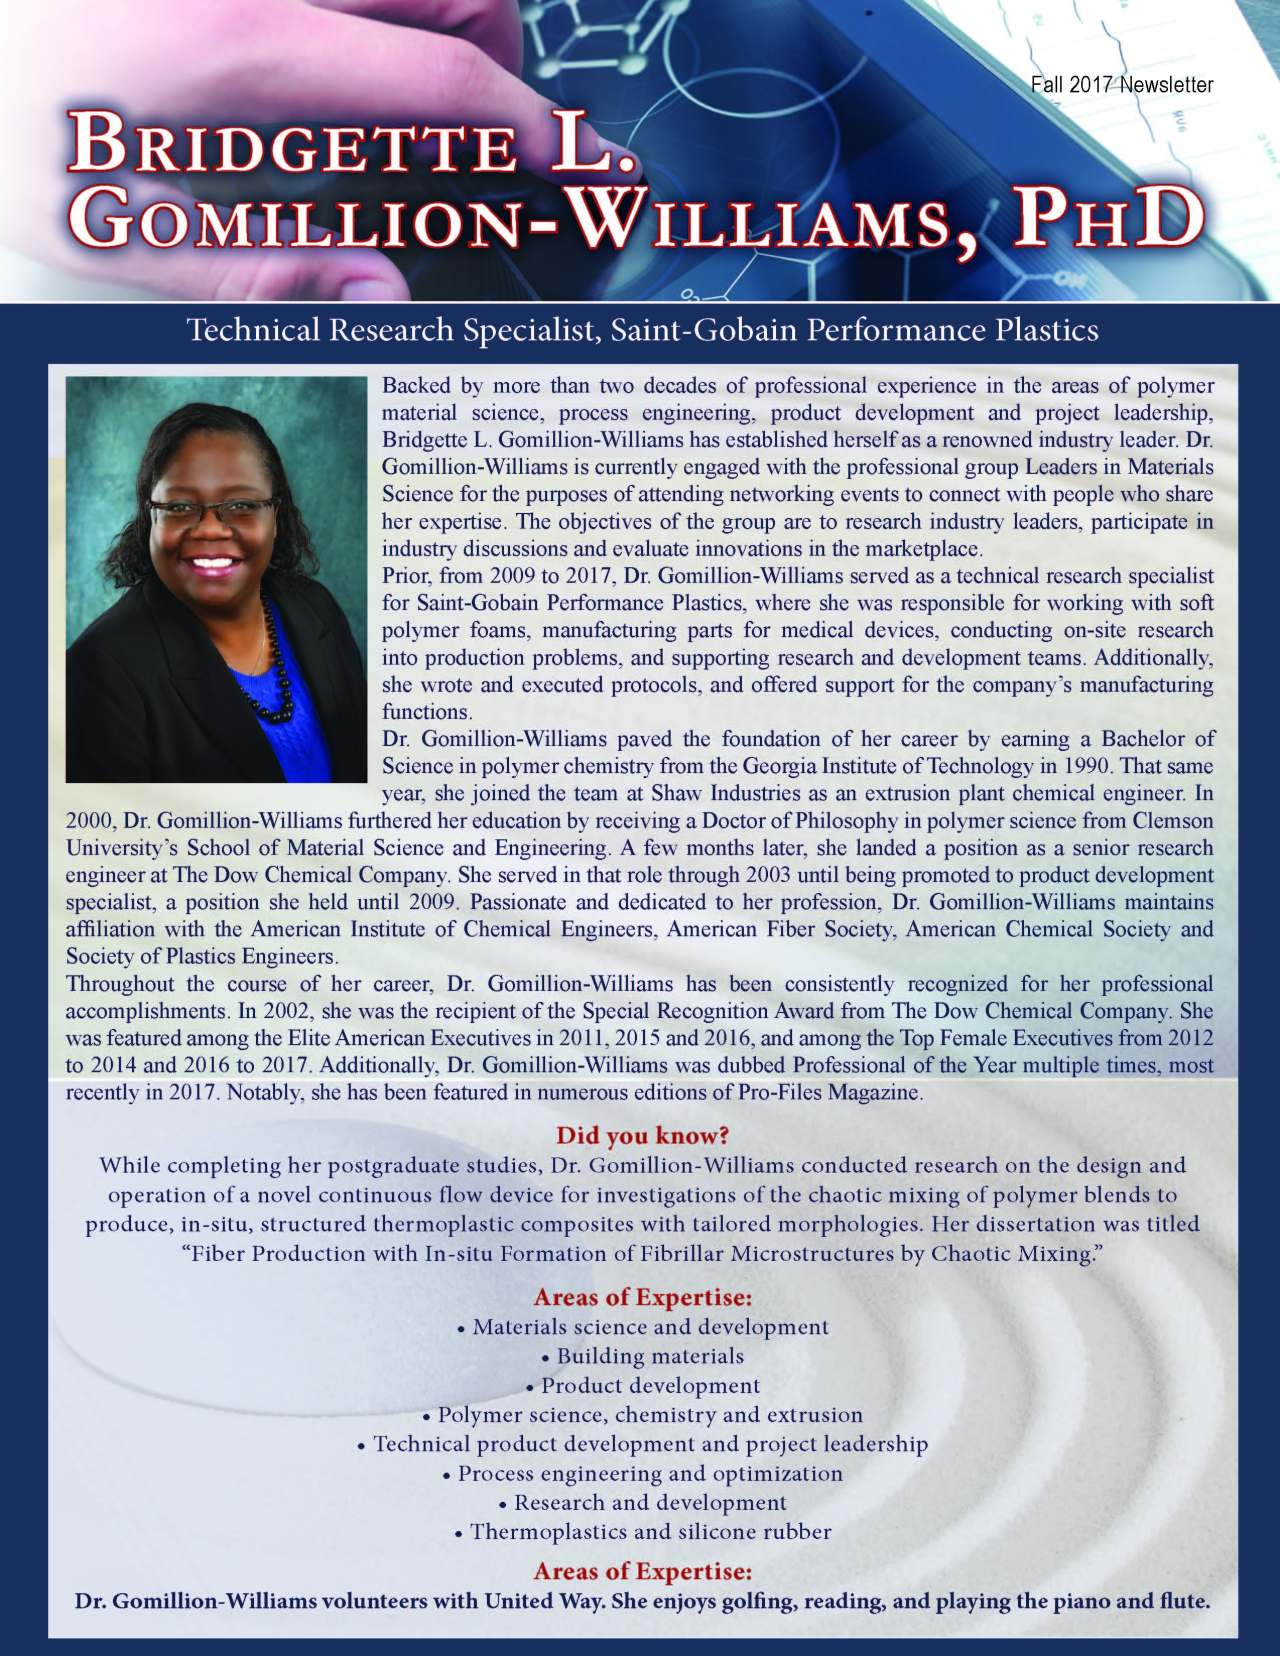 Gomillion-Williams, Bridgette 1367025_40004109 Newsletter.jpg